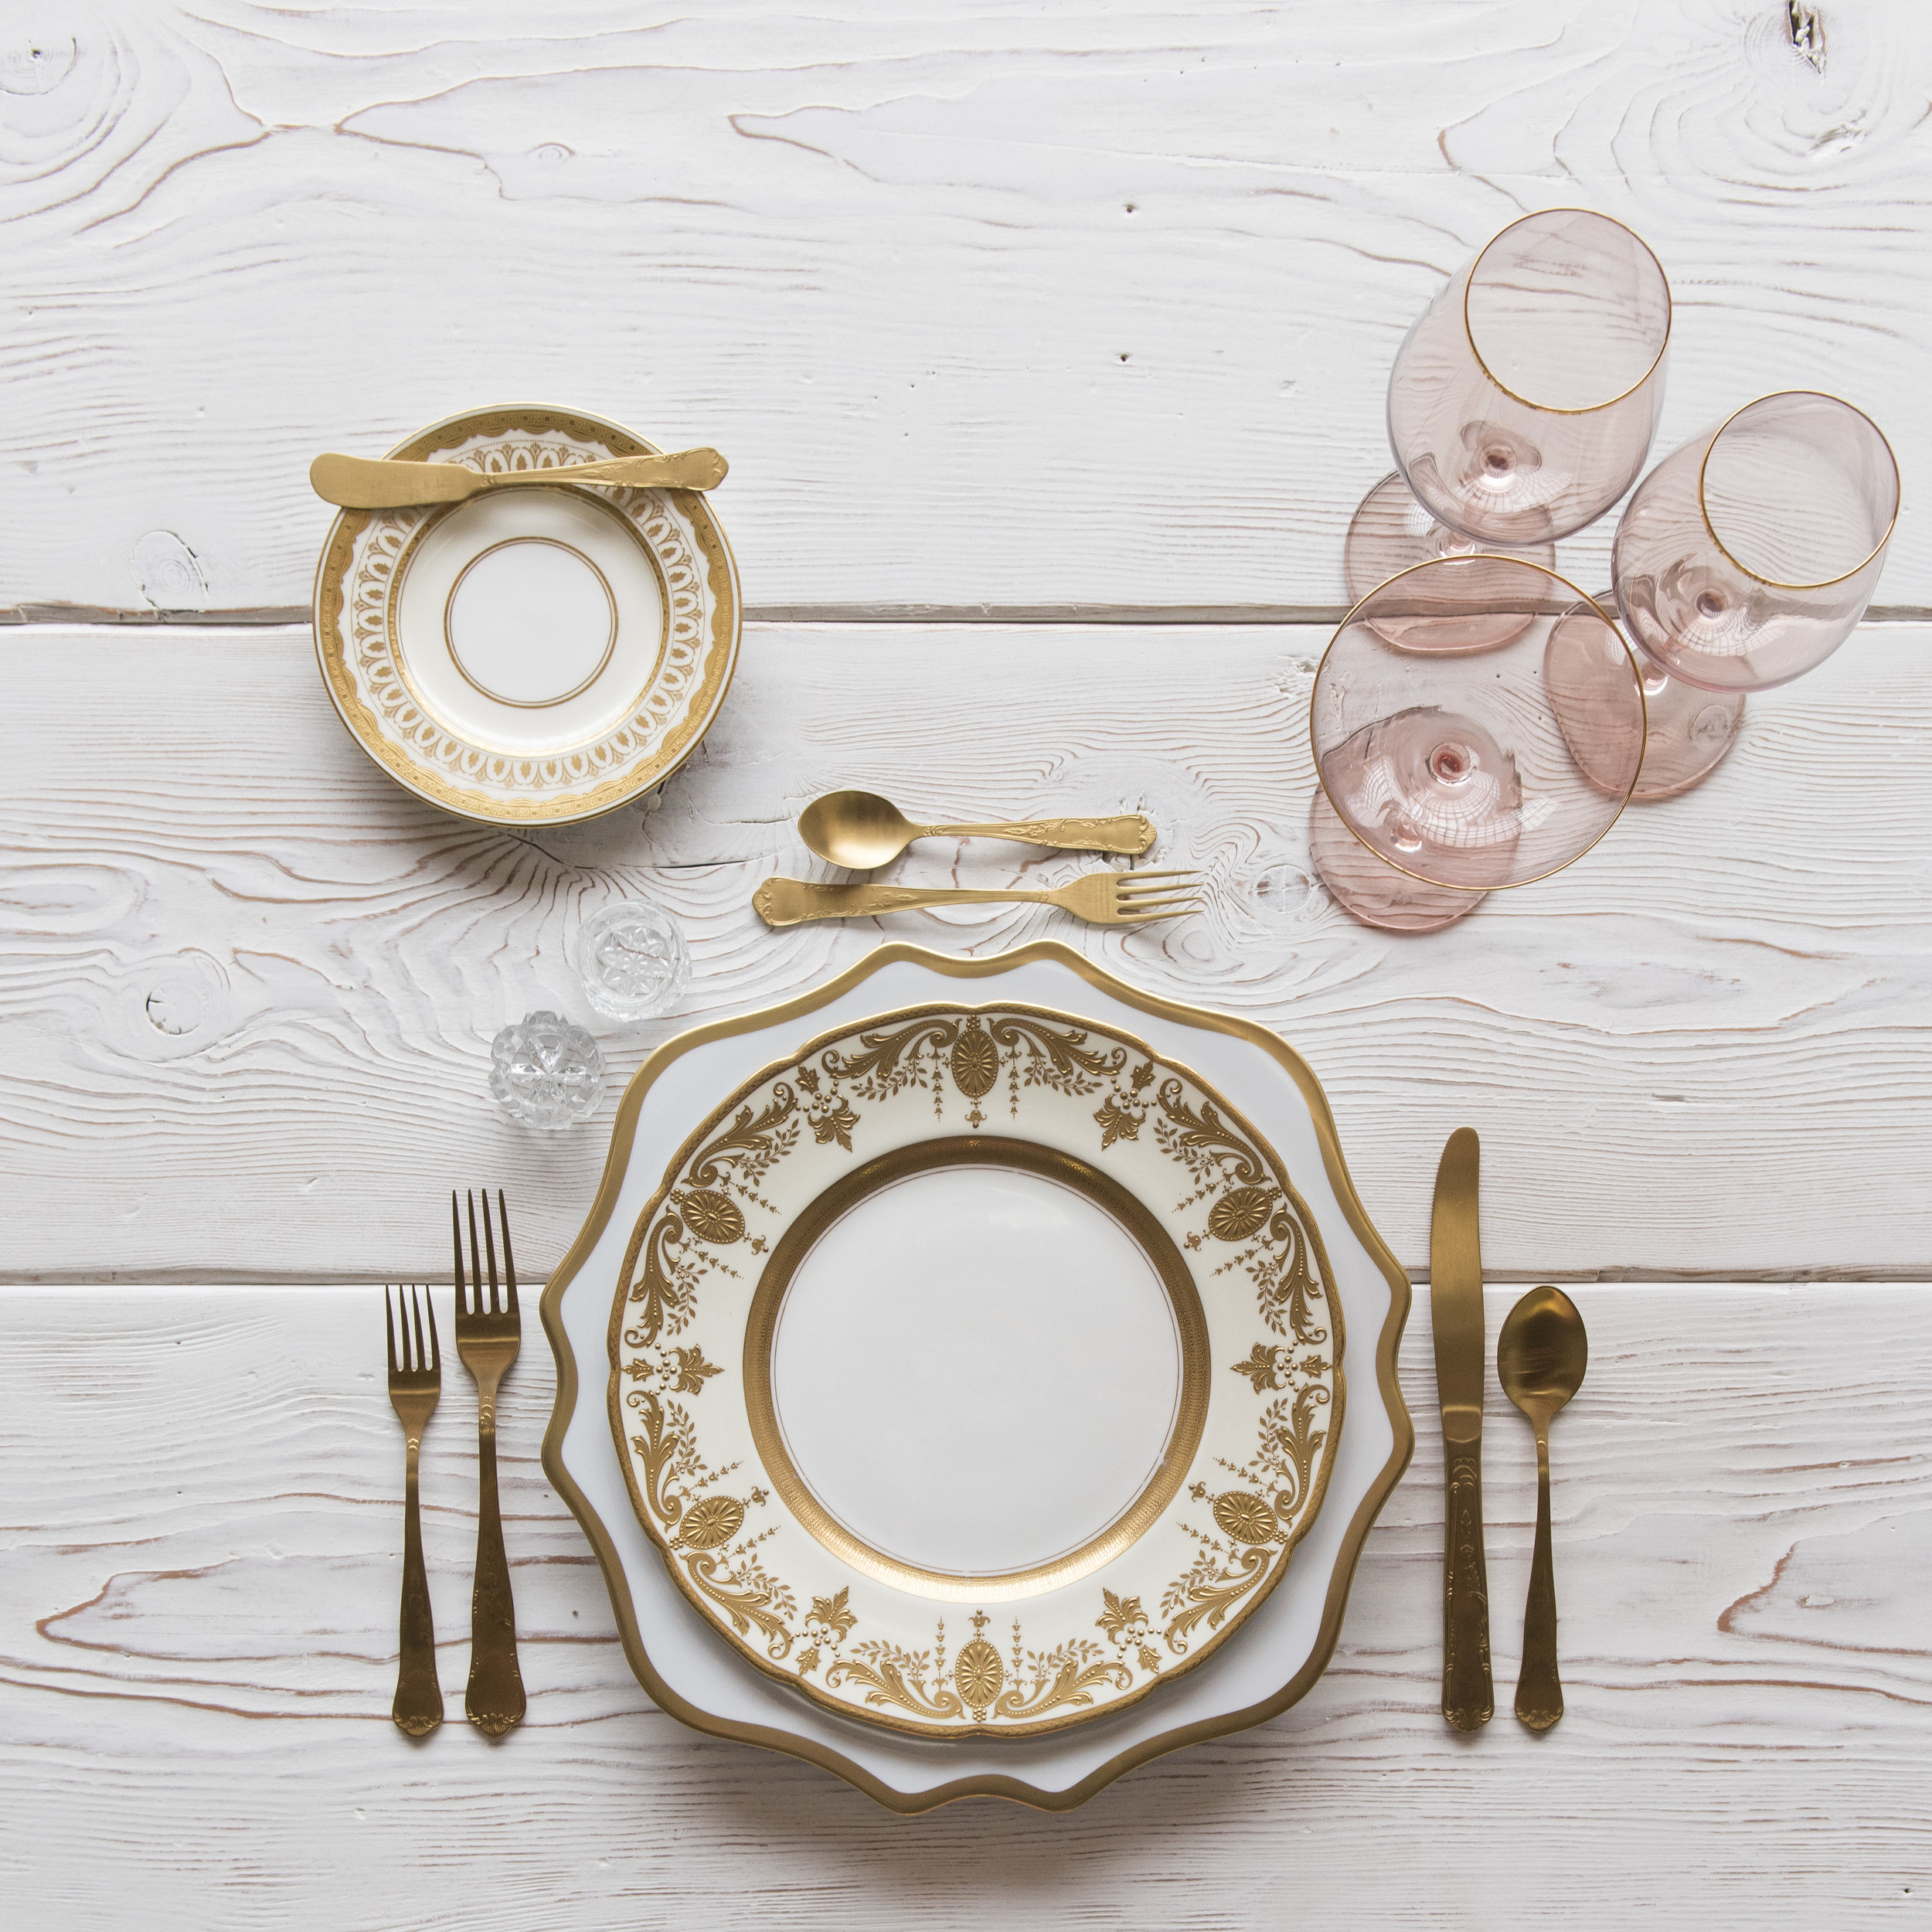 RENT: Anna Weatherley Chargers in White/Gold + Crown Gold Collection Vintage China + Chateau Flatware in Matte Gold + Bella 24k Gold Rimmed Stemware in Blush + Antique Crystal Salt Cellars   SHOP: Anna Weatherley Chargers in White/Gold + Bella 24k Gold Rimmed Stemware in Blush